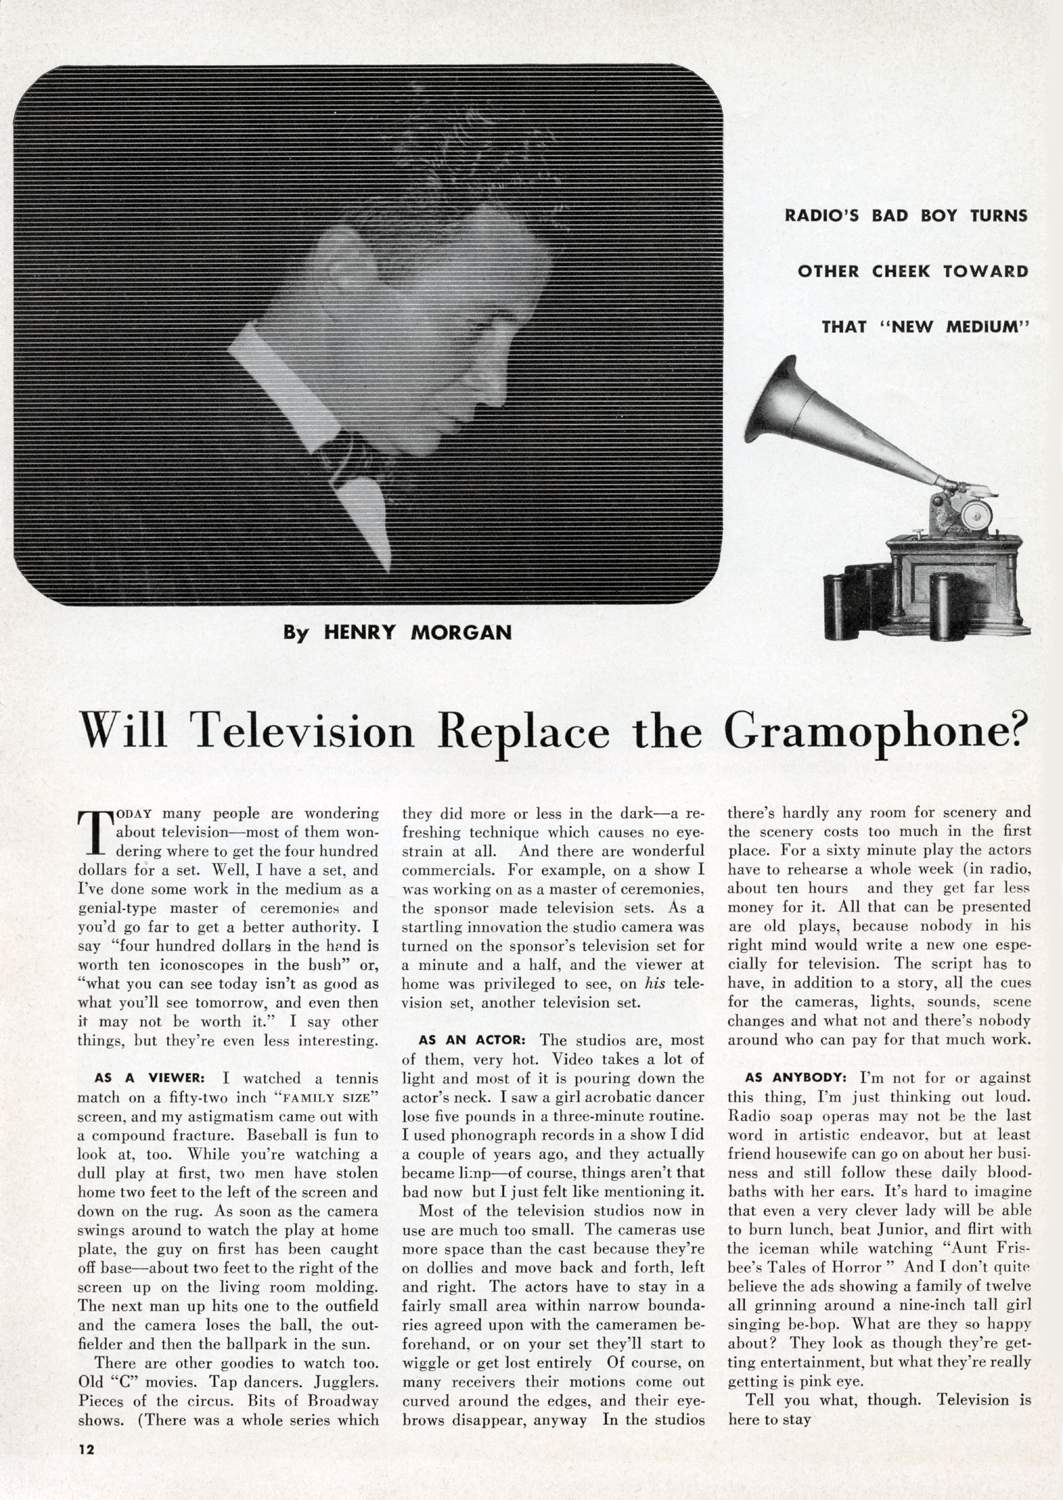 July 17, 1948 INSIDE  CUE : Will Television Replace the Gramophone?